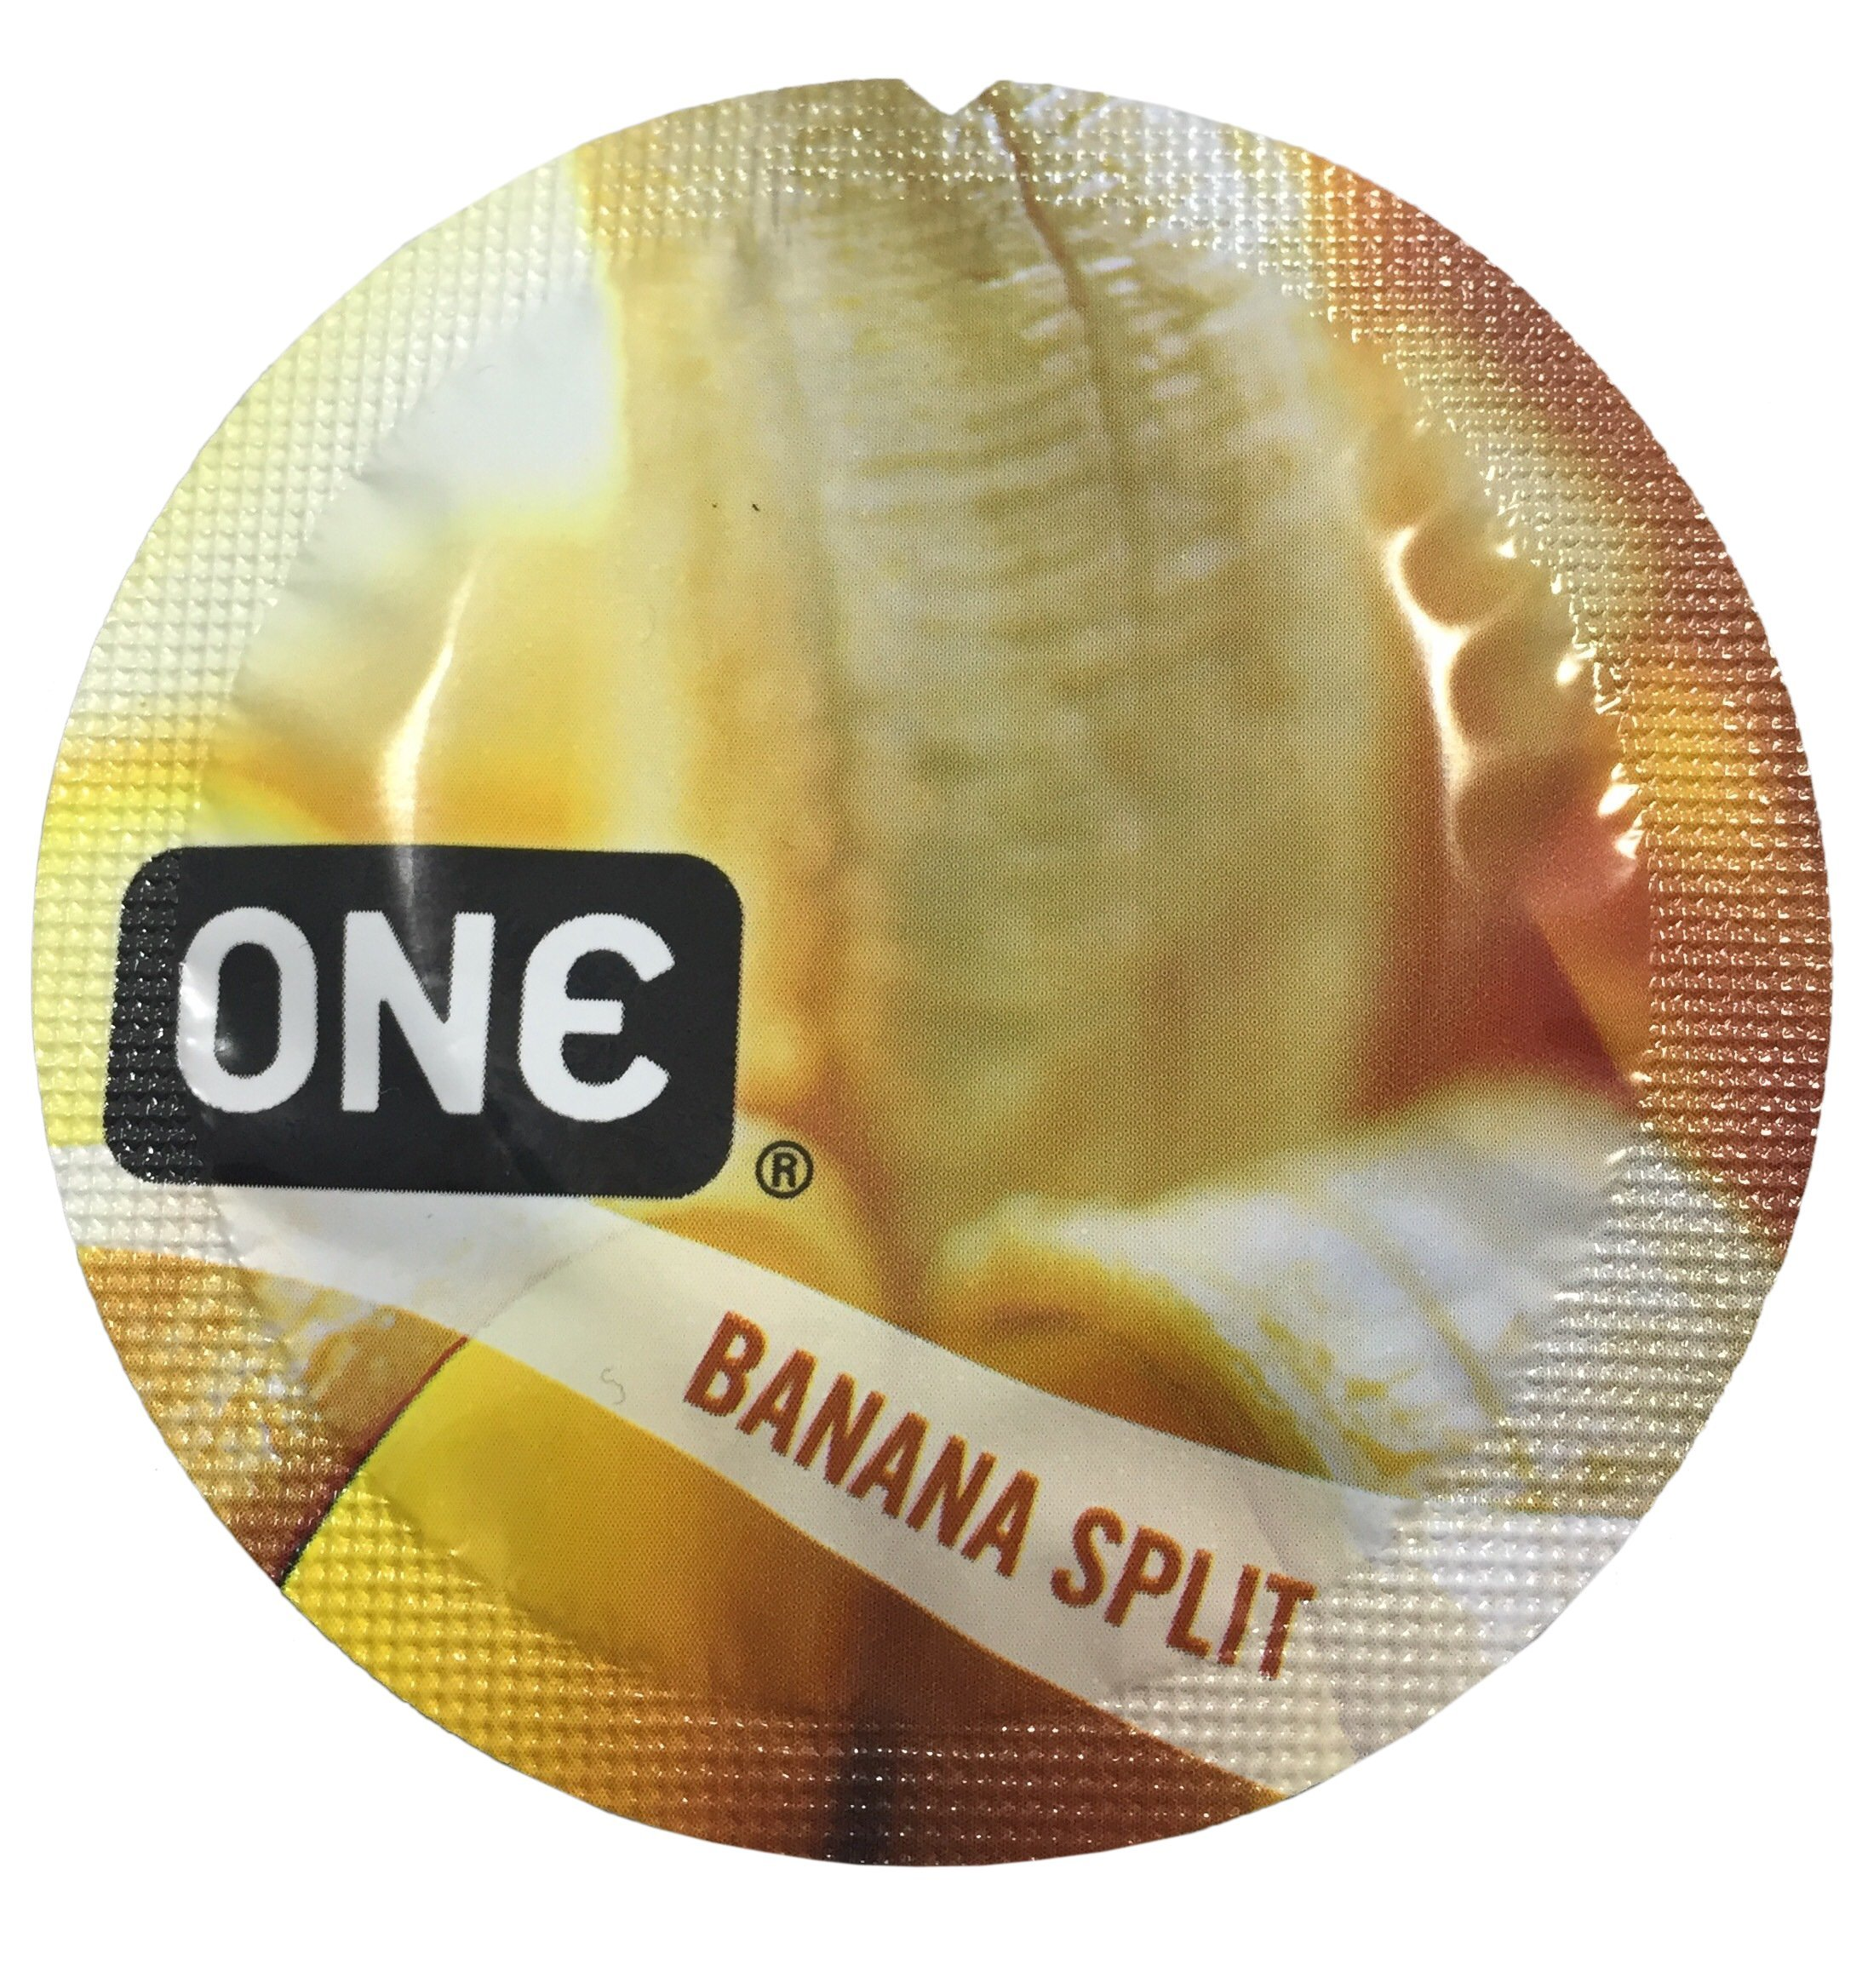 ONE Banana Split Flavored Lubricated Latex Condoms with Silver Pocket/Travel Case-12 Count